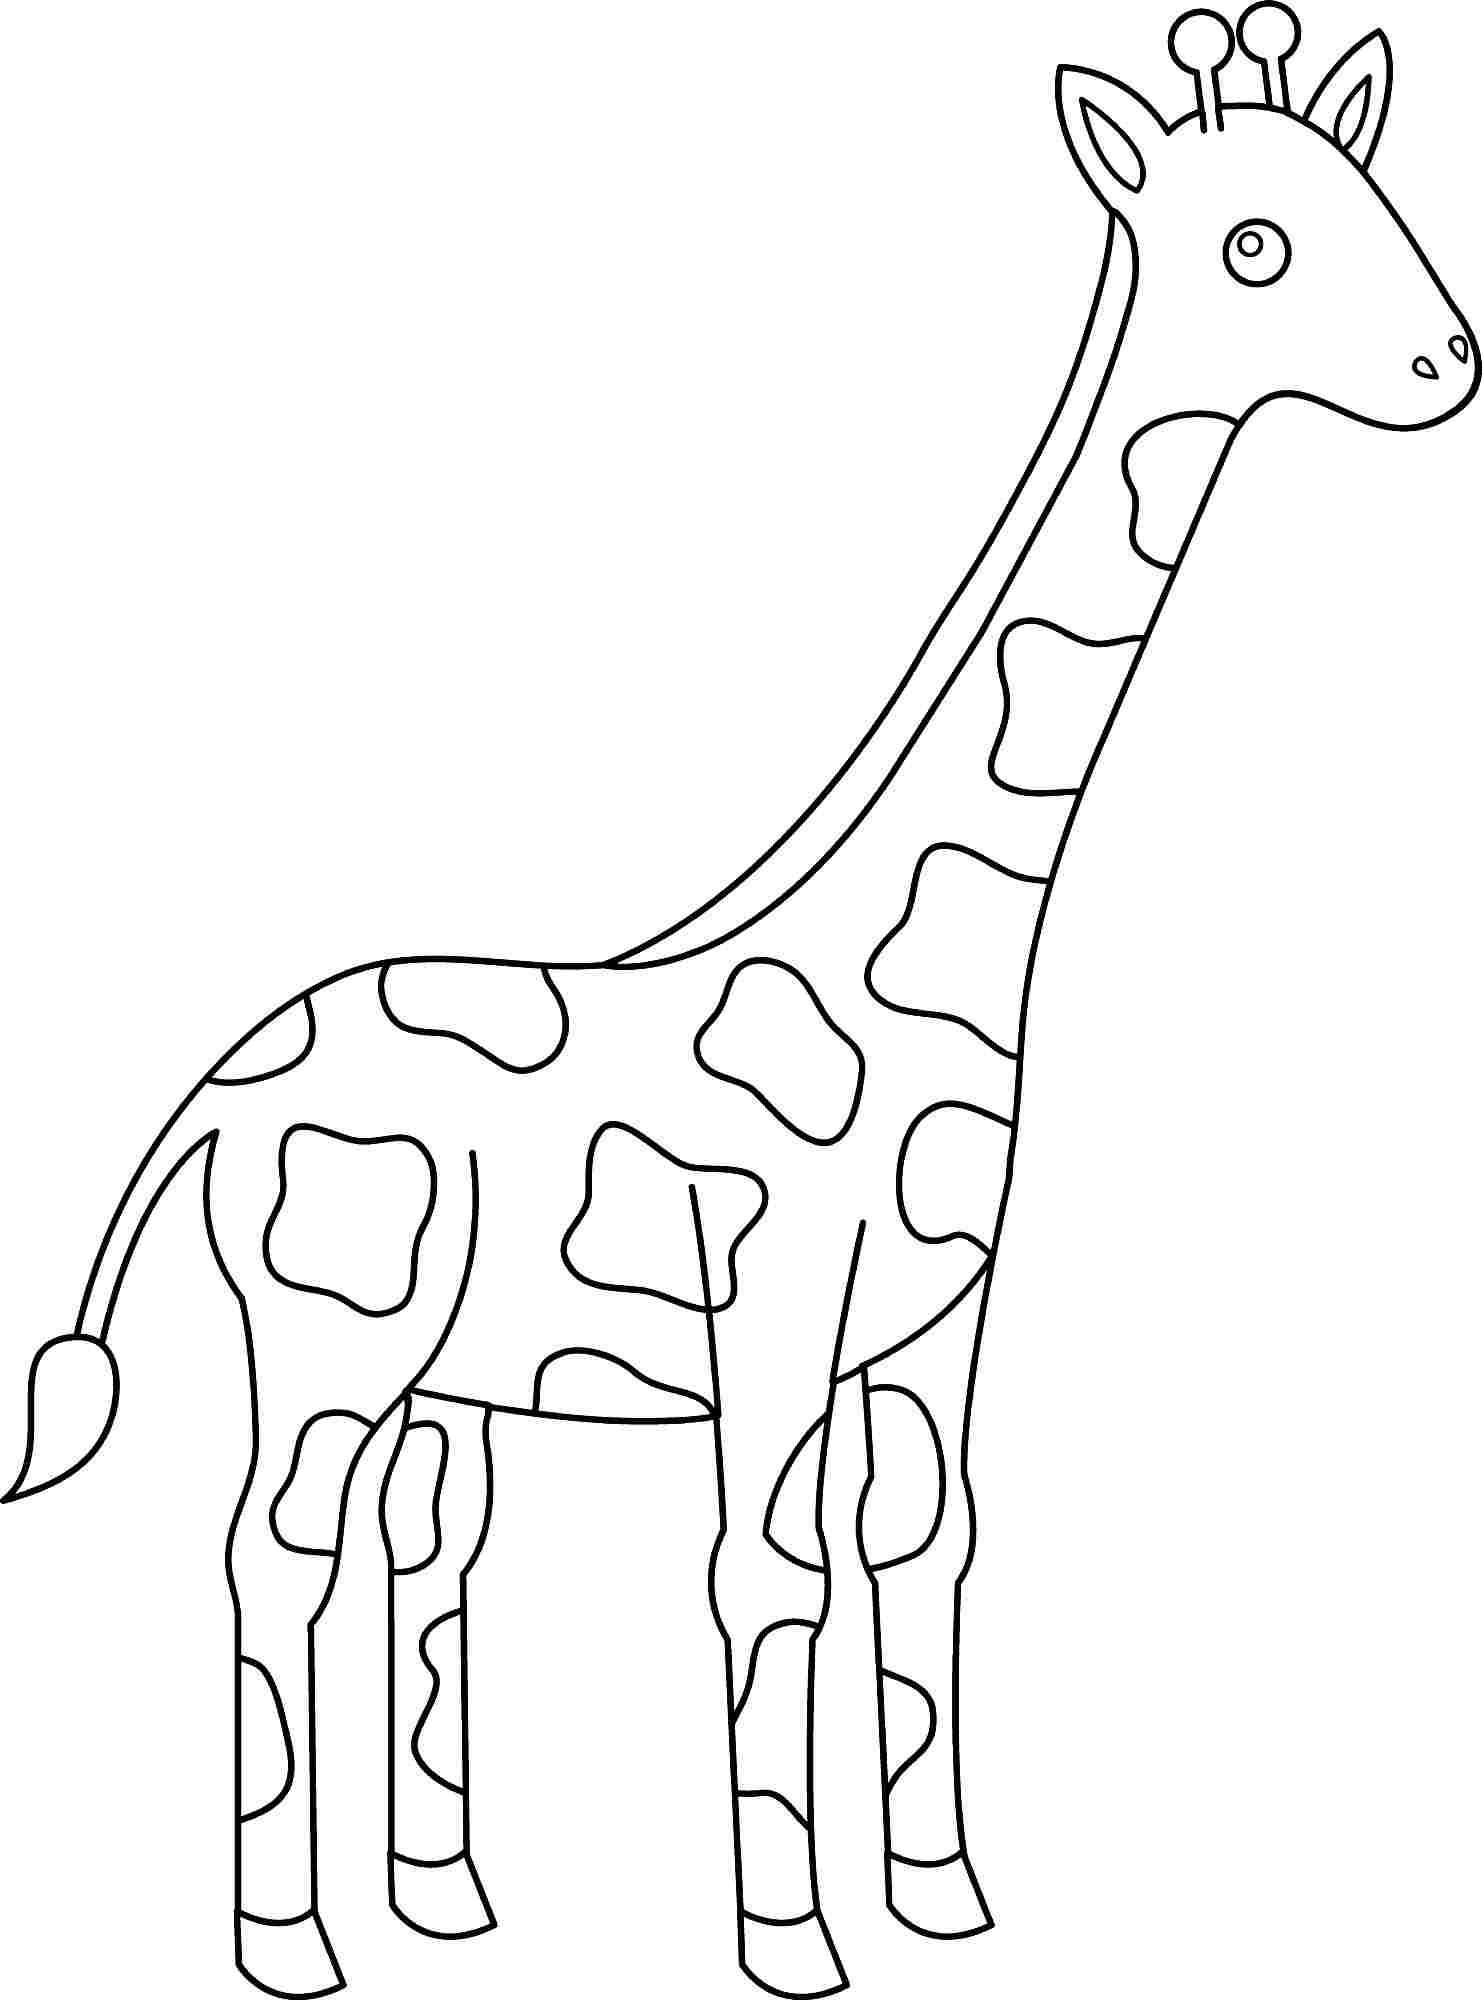 55 Cute Giraffe Coloring Pages